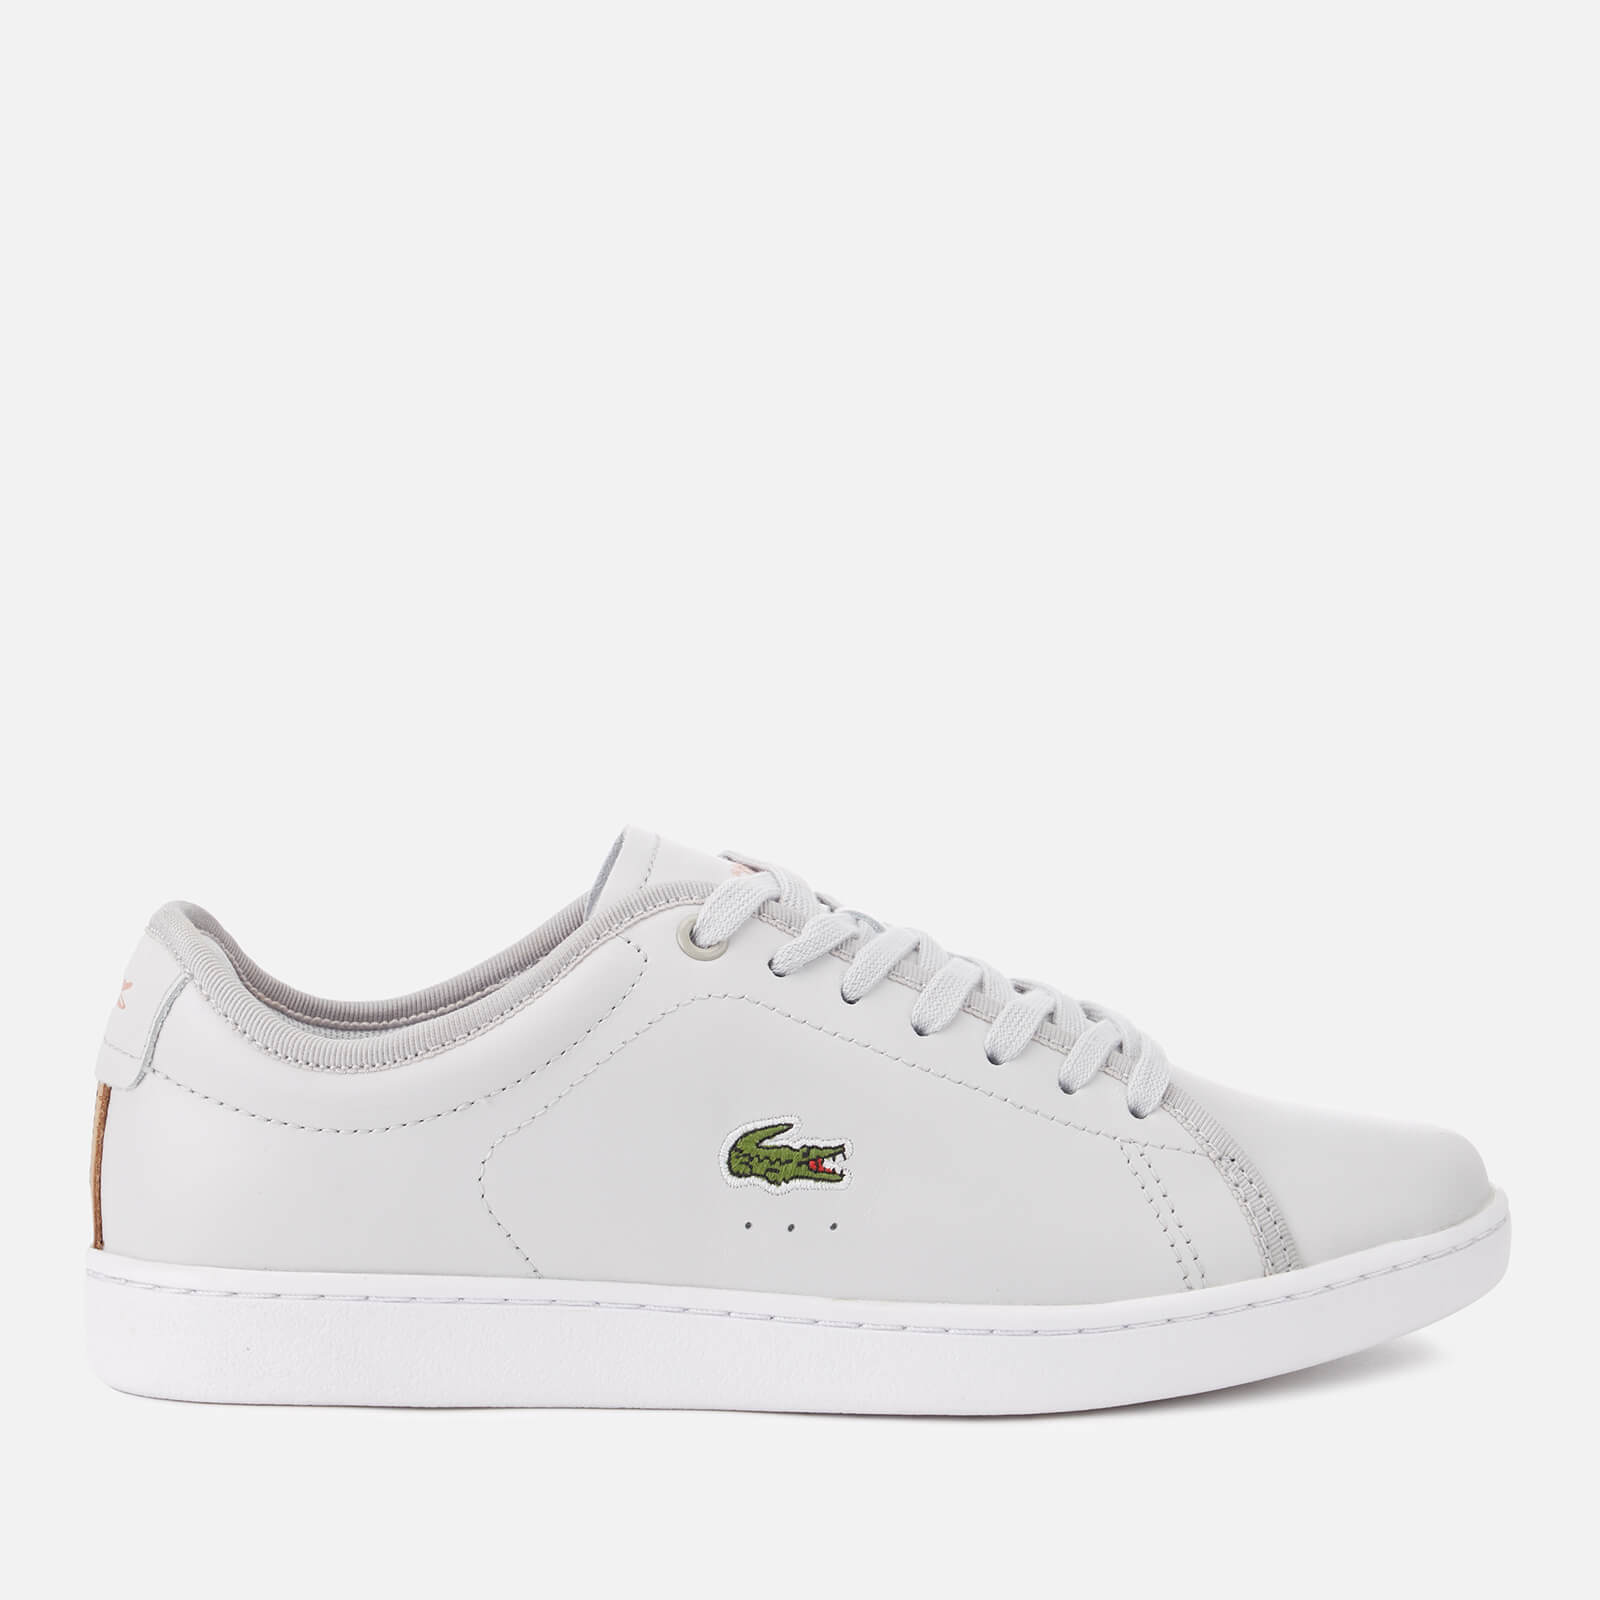 f1011f1a Lacoste Women's Carnaby Evo 318 6 Leather Trainers - Light Grey/White Womens  Footwear | TheHut.com